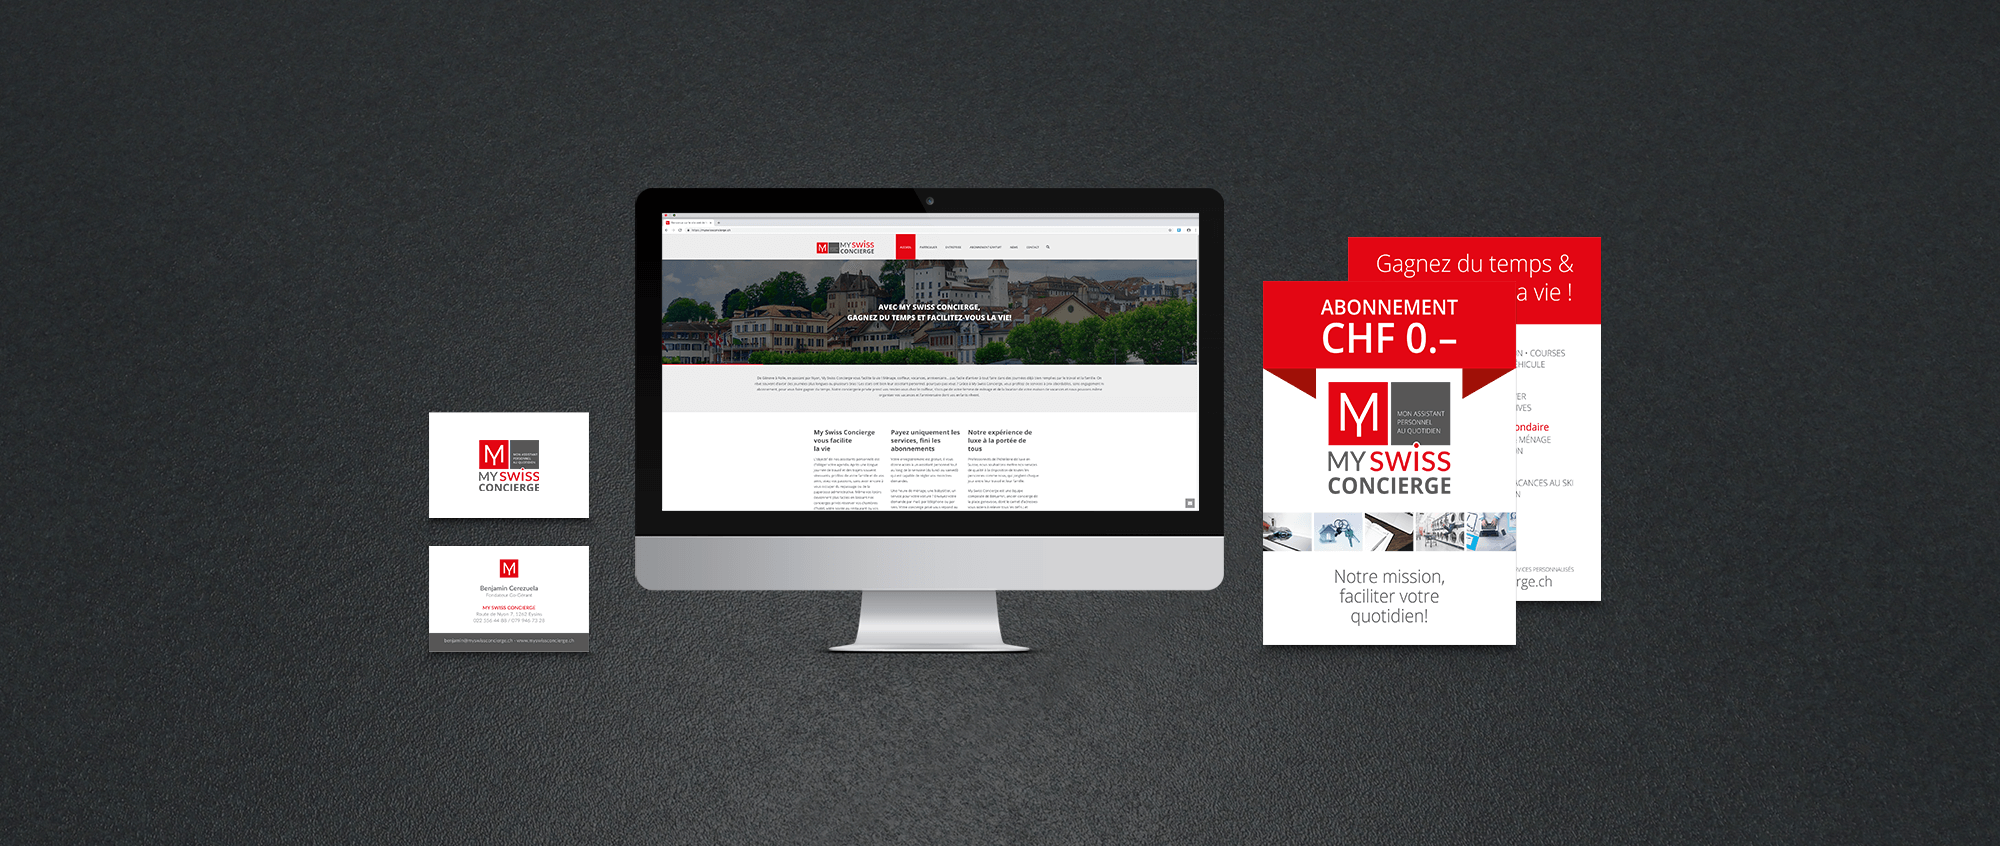 myswissconcierge-slider-inter-projet2